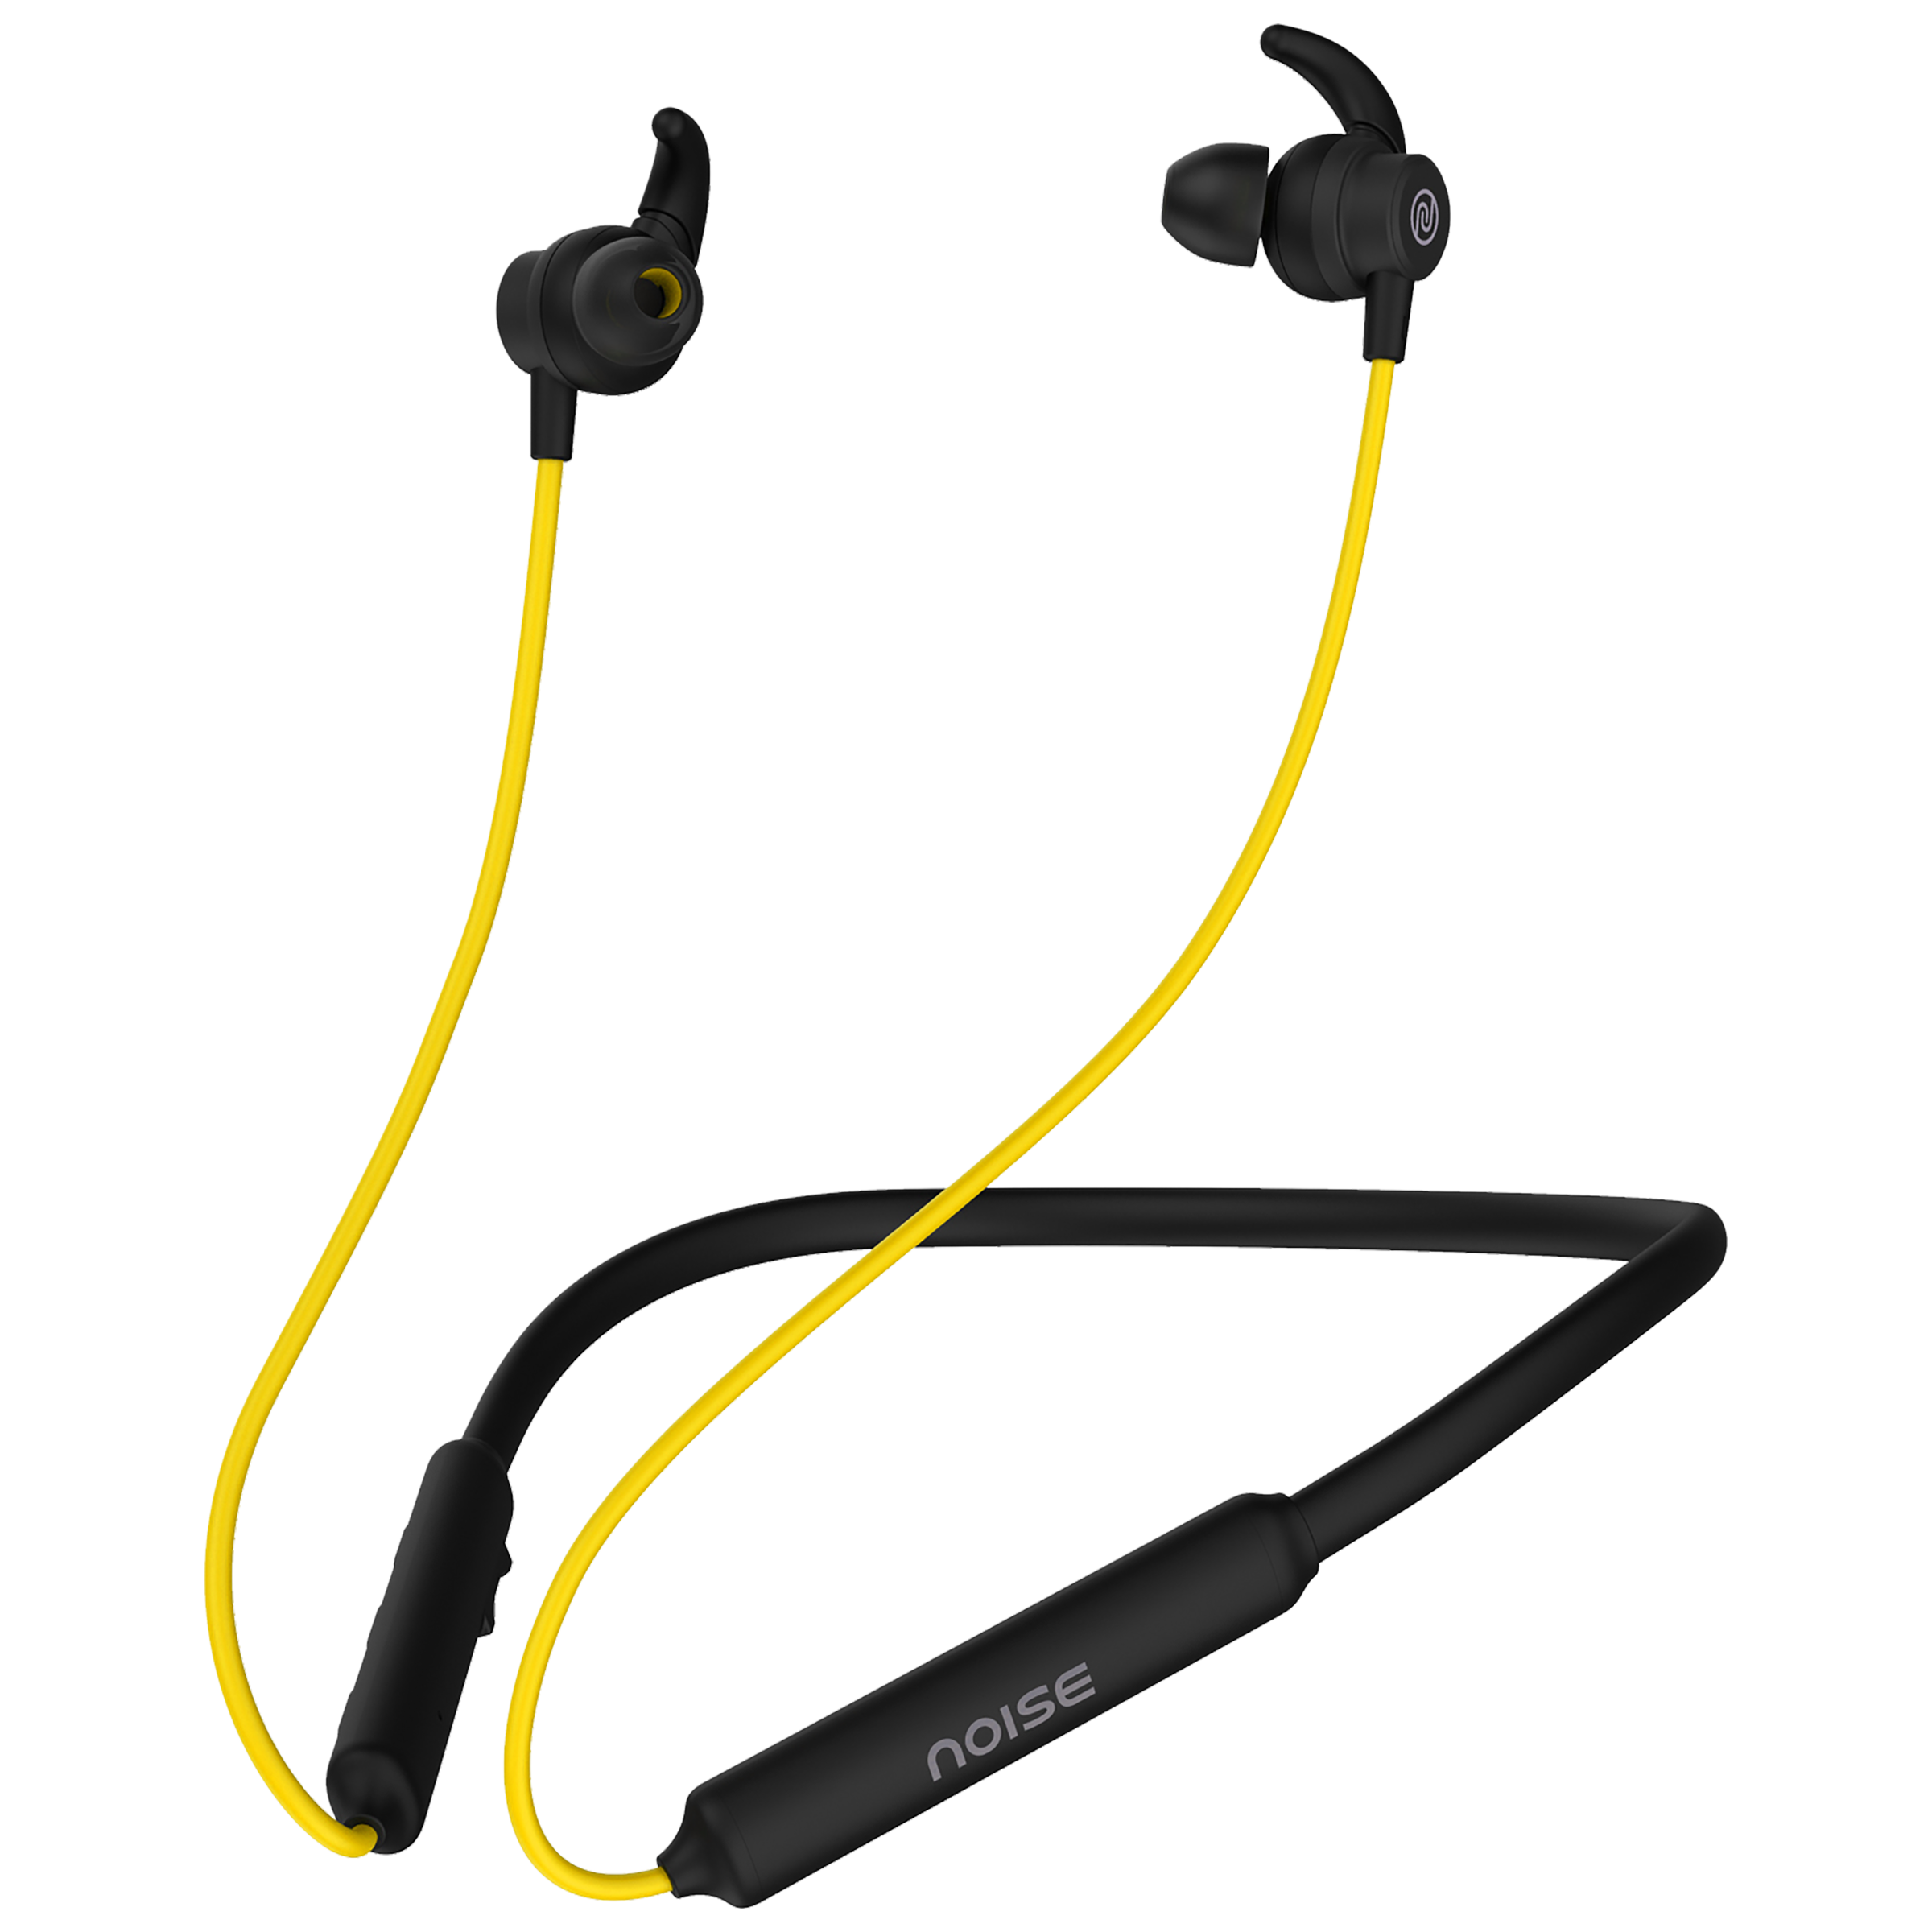 Noise Tune Active In-Ear Wireless Earphone with Mic (Bluetooth 5.0, IPX5 Water Resistant, Yellow)_1